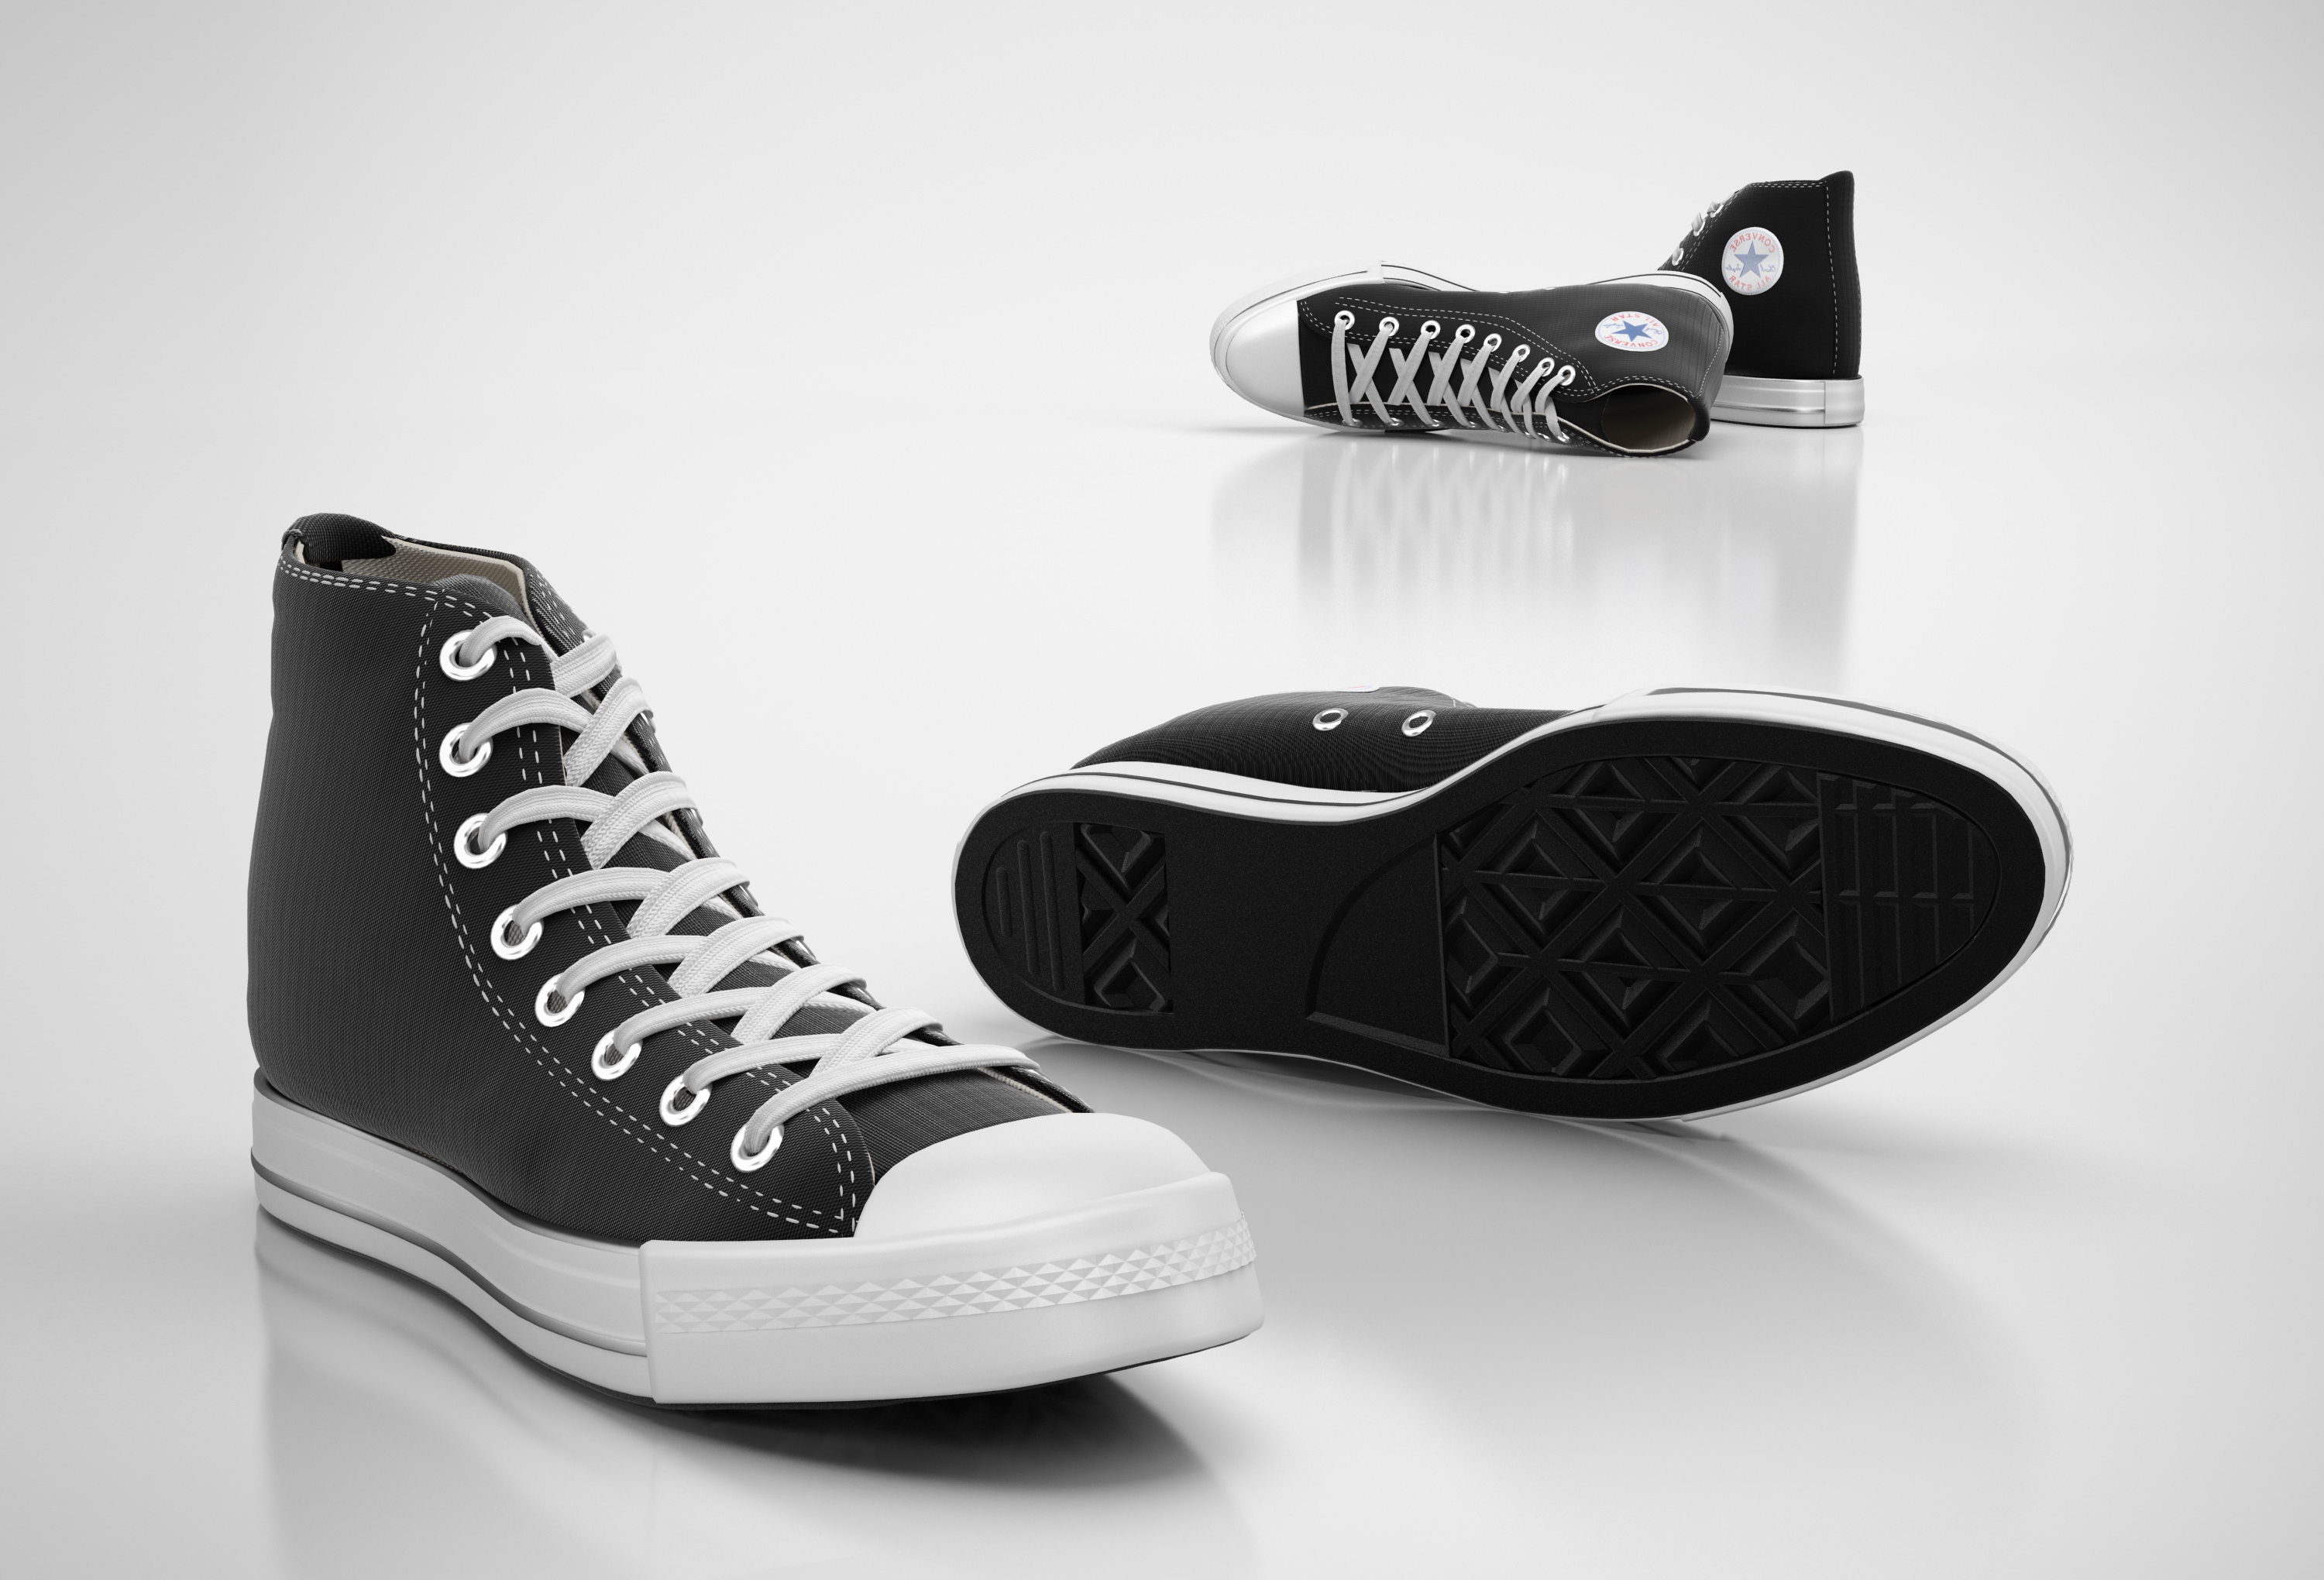 converse shoes 3ds max download